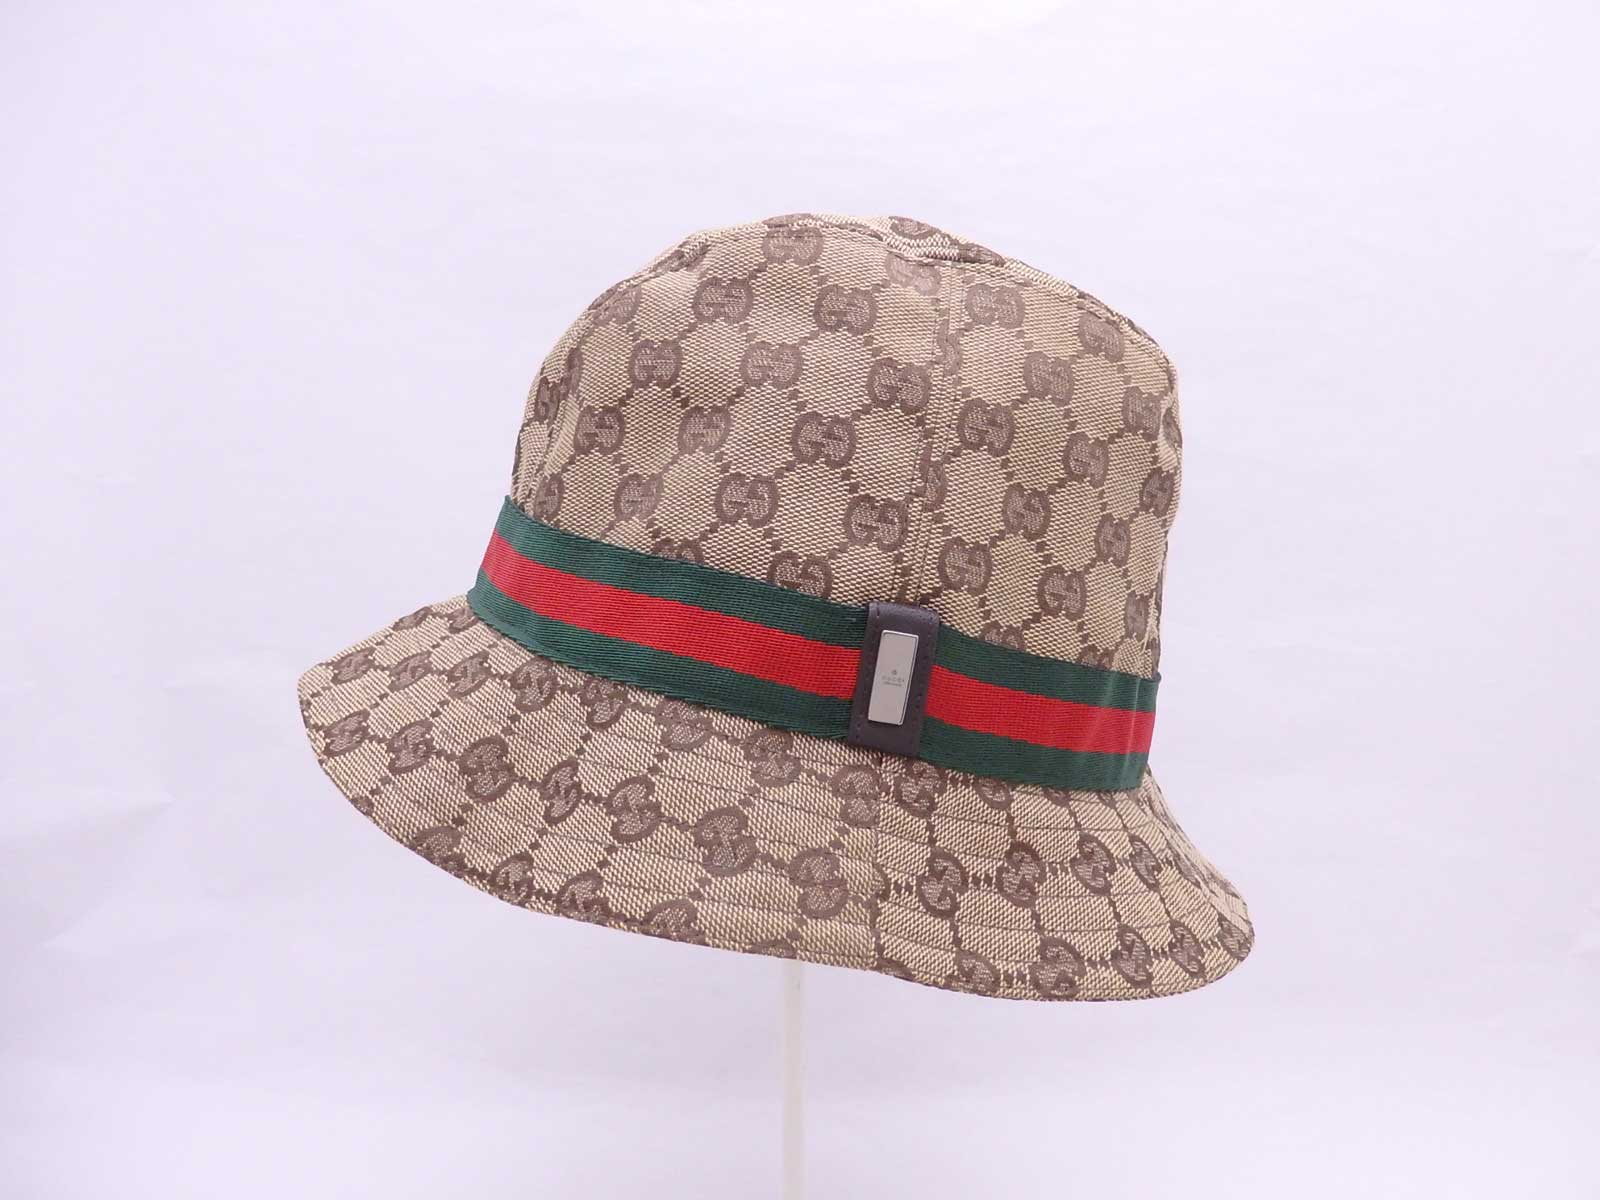 Details about Auth Gucci GG Canvas Fedora Hat  Stamped Size  L  Beige Brown  - e37526 91f5c86f02b6